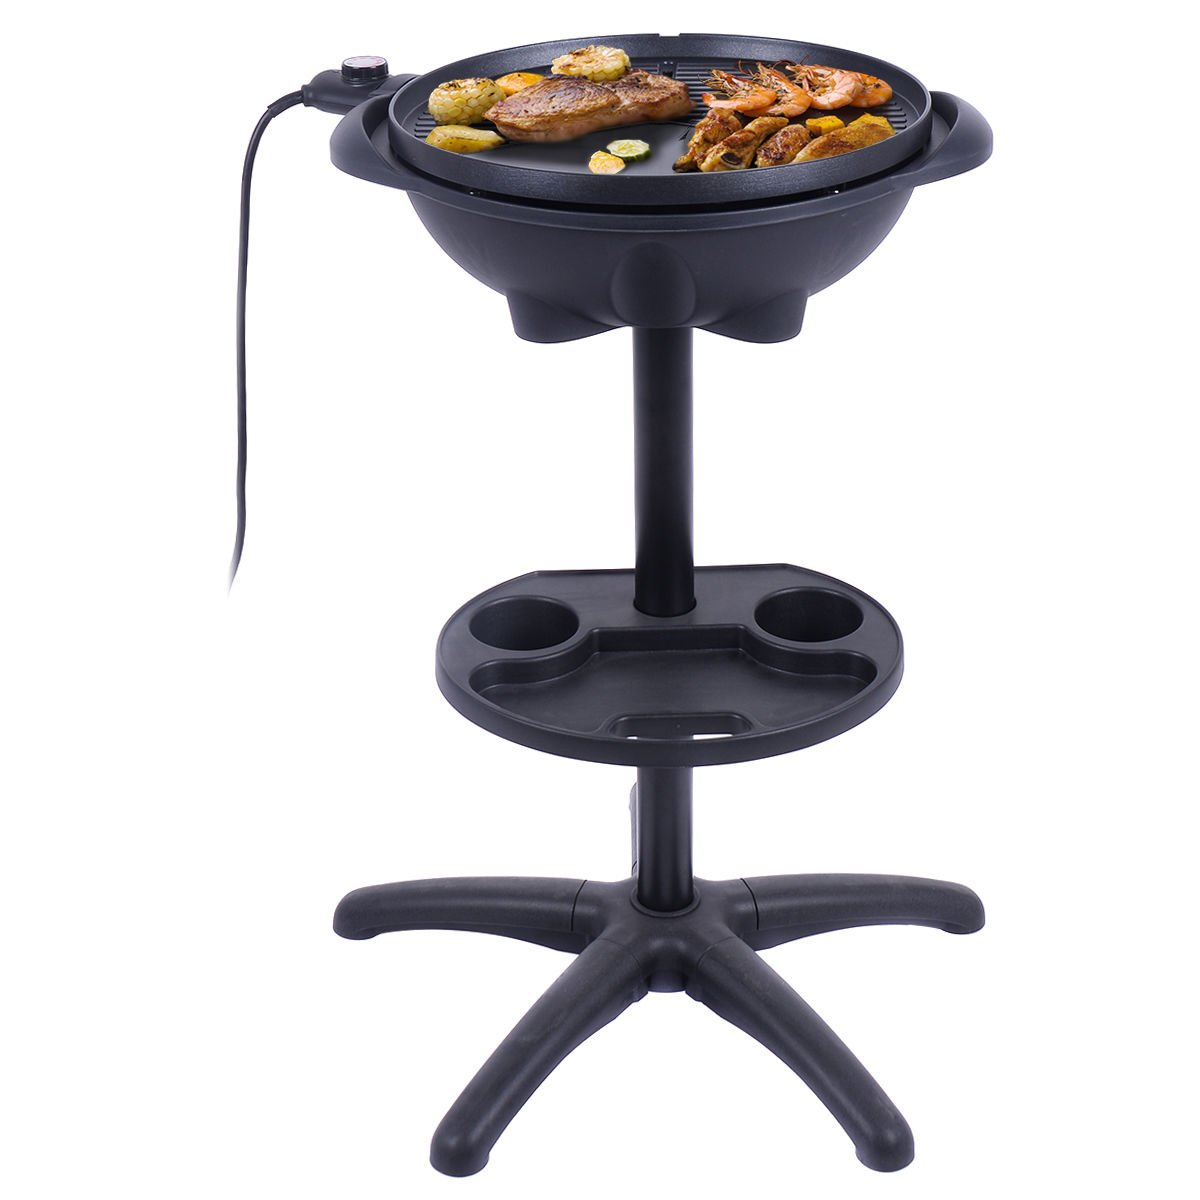 New Electric BBQ Grill 1350W Non-stick 4 Temperature Setting Outdoor Garden Camping by totoshop (Image #1)